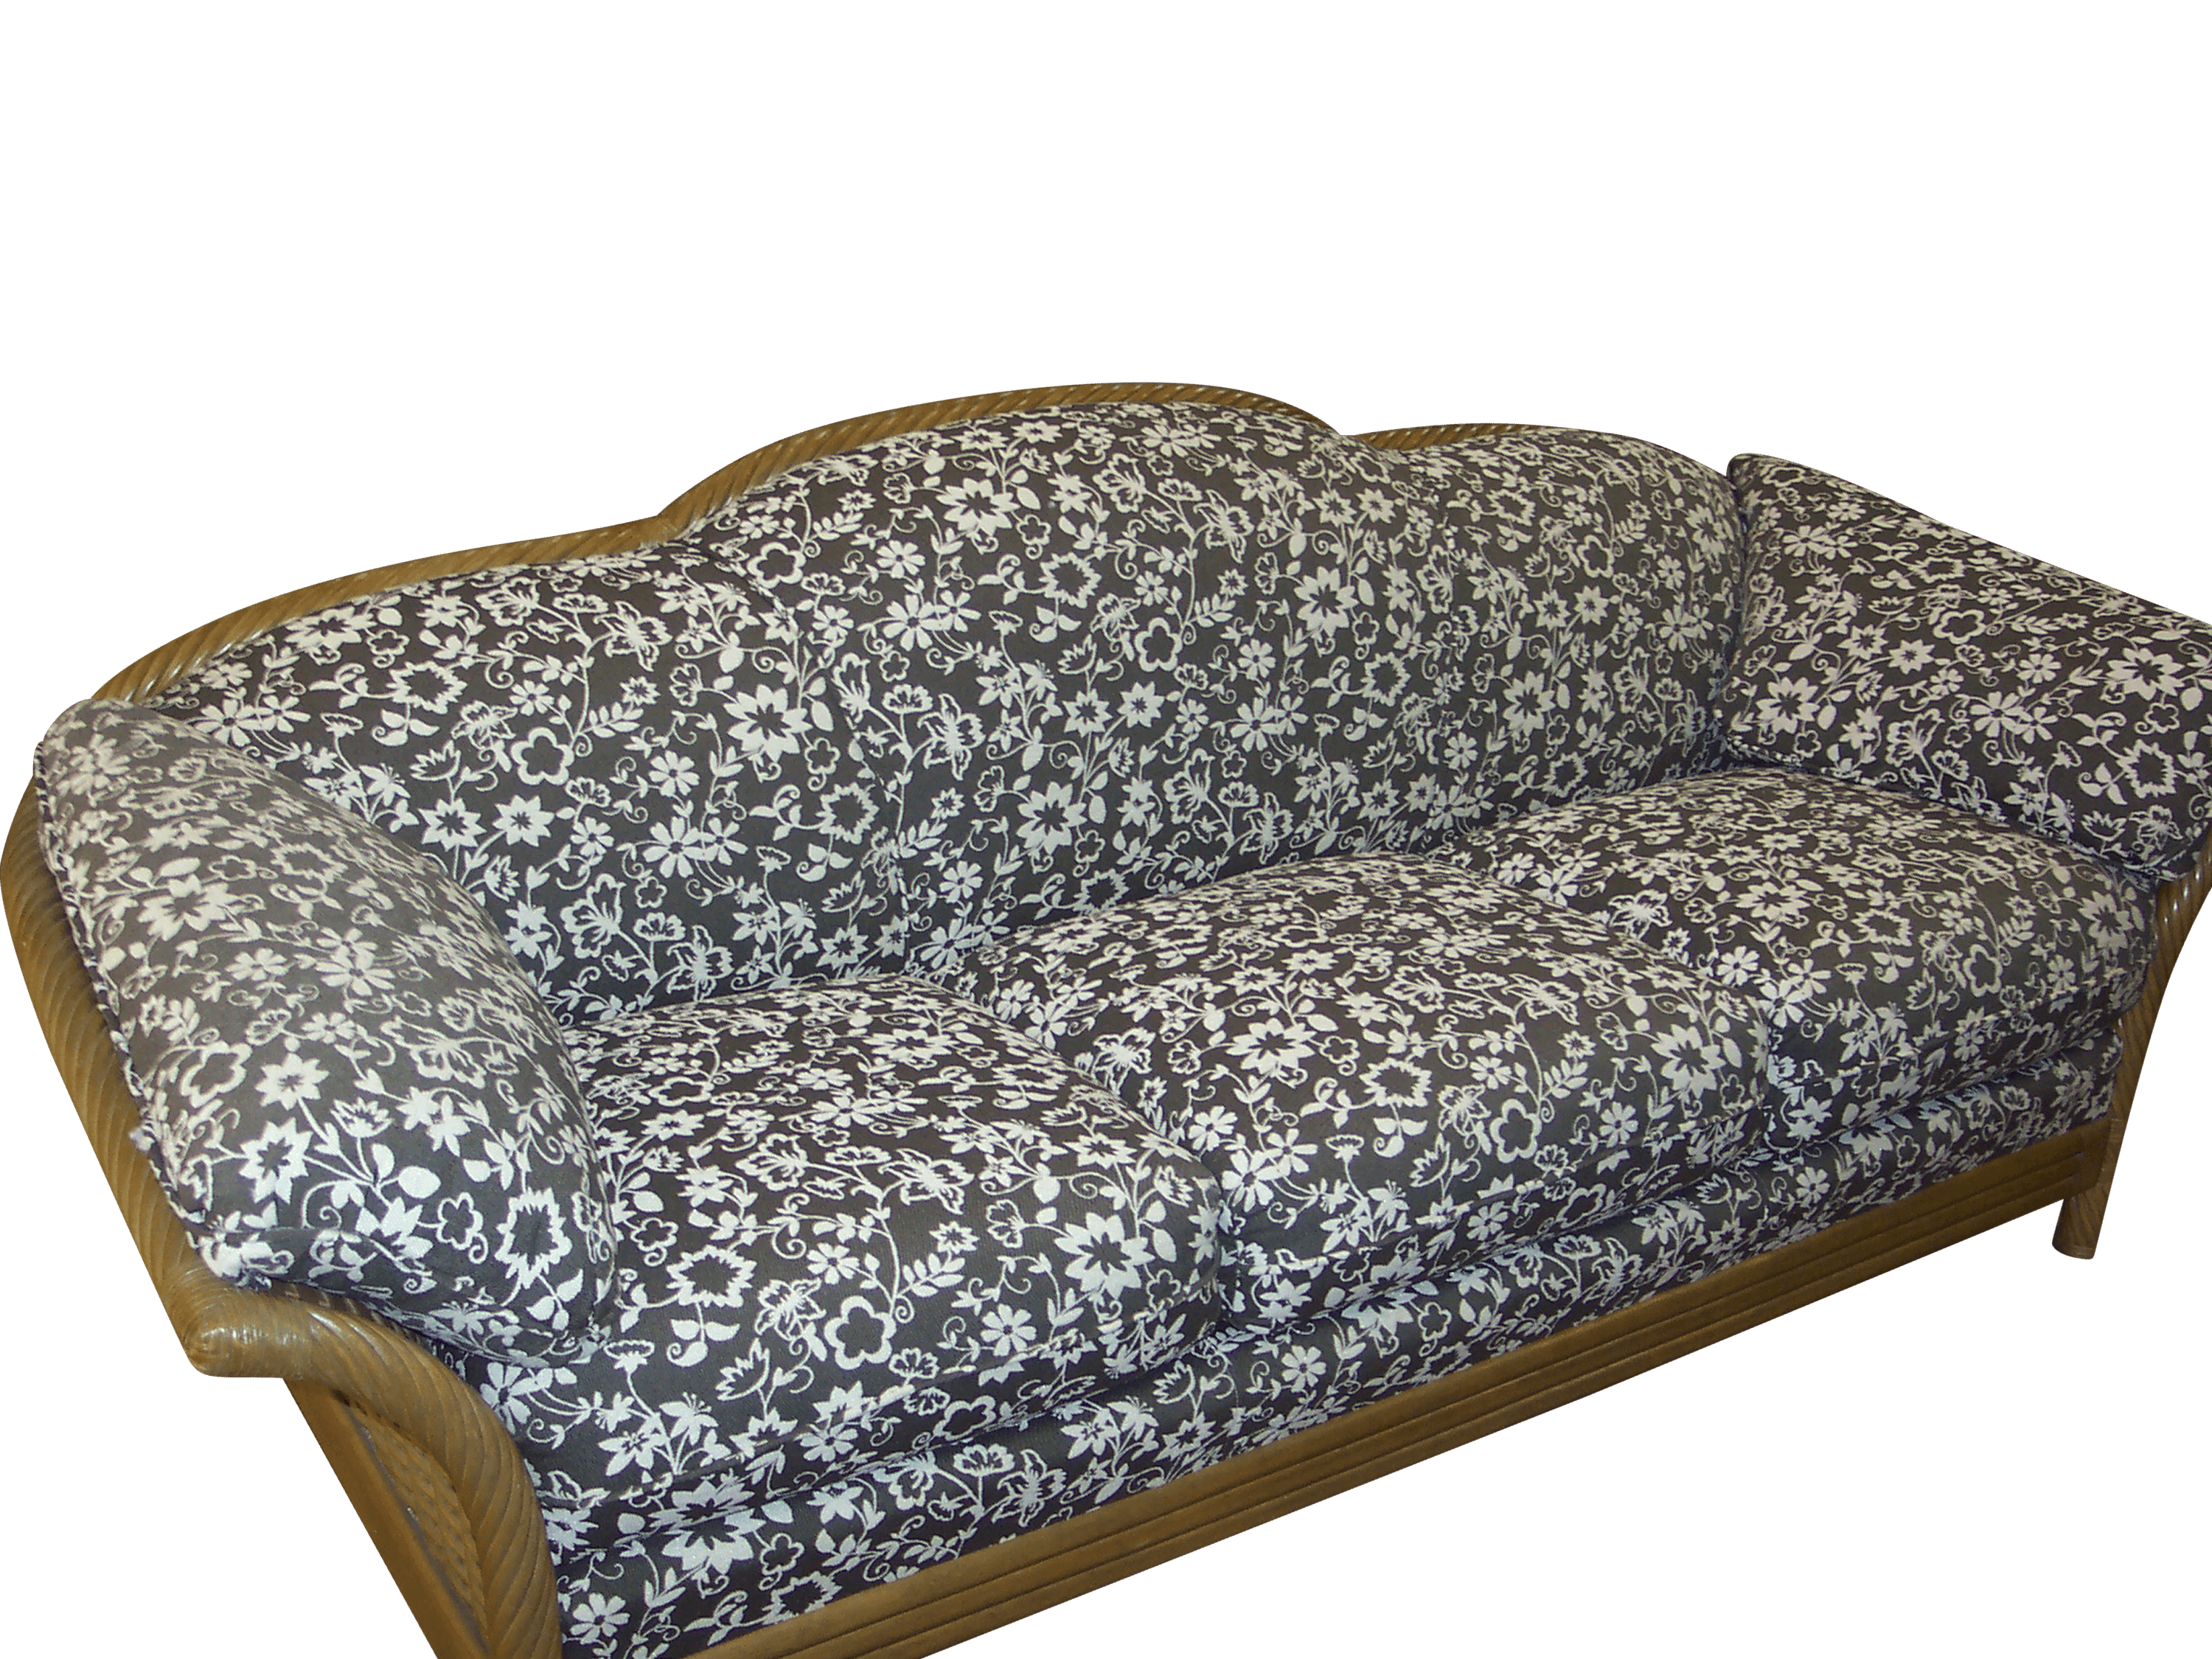 Re-upolstery of a sofa